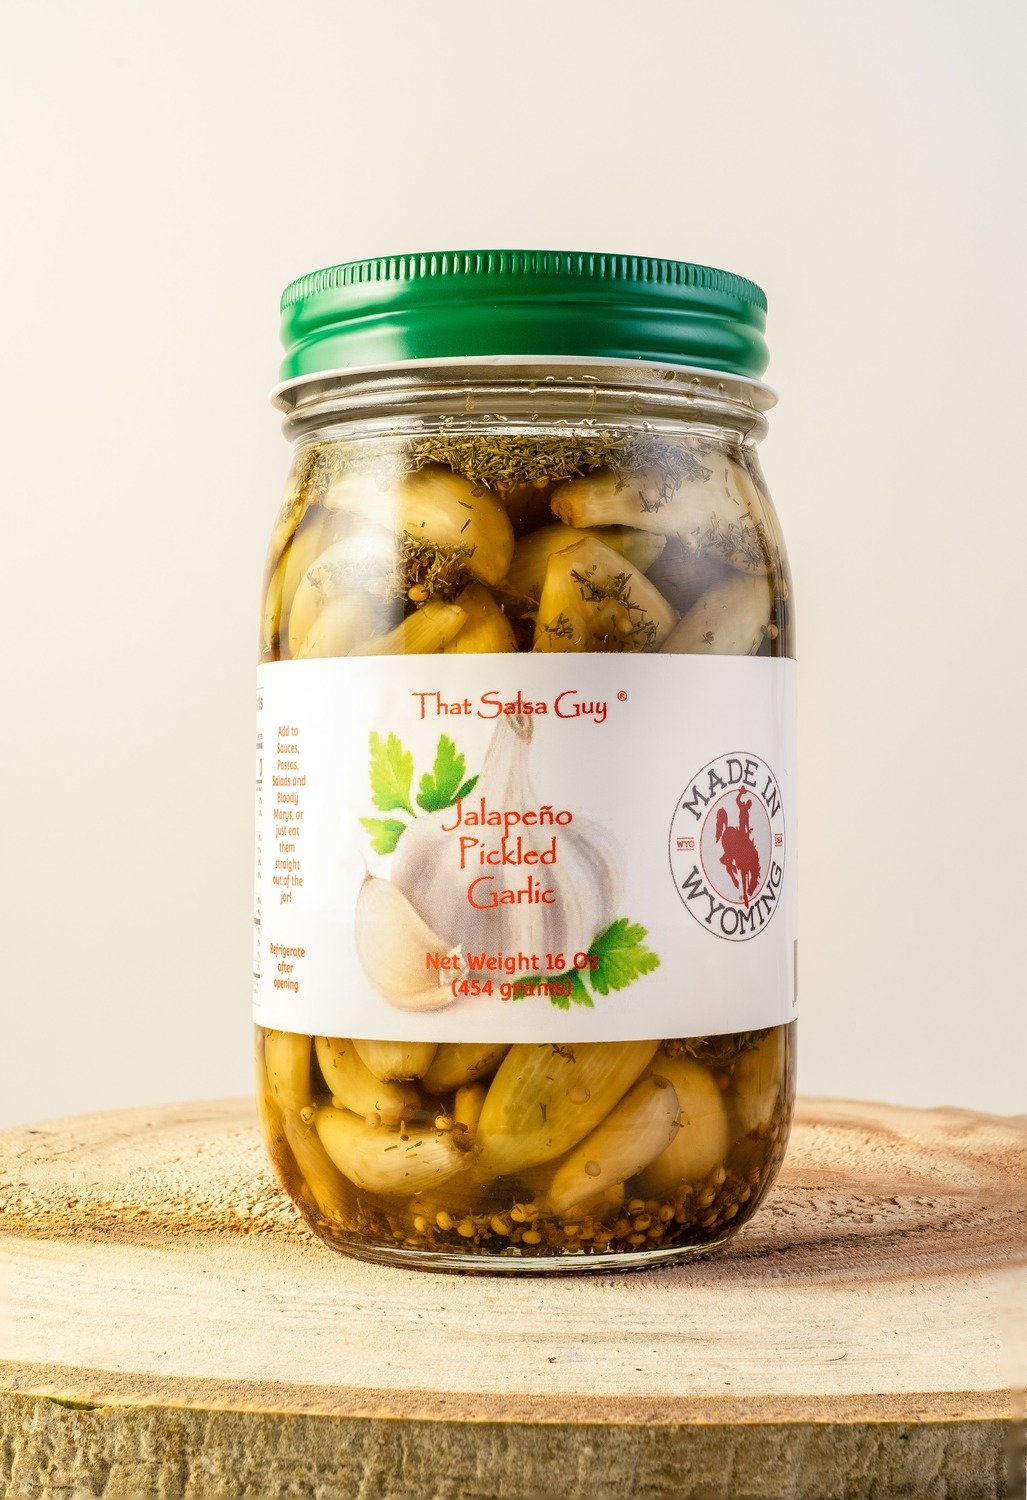 Jalapeño Pickled Garlic  (Temporarily out of stock)